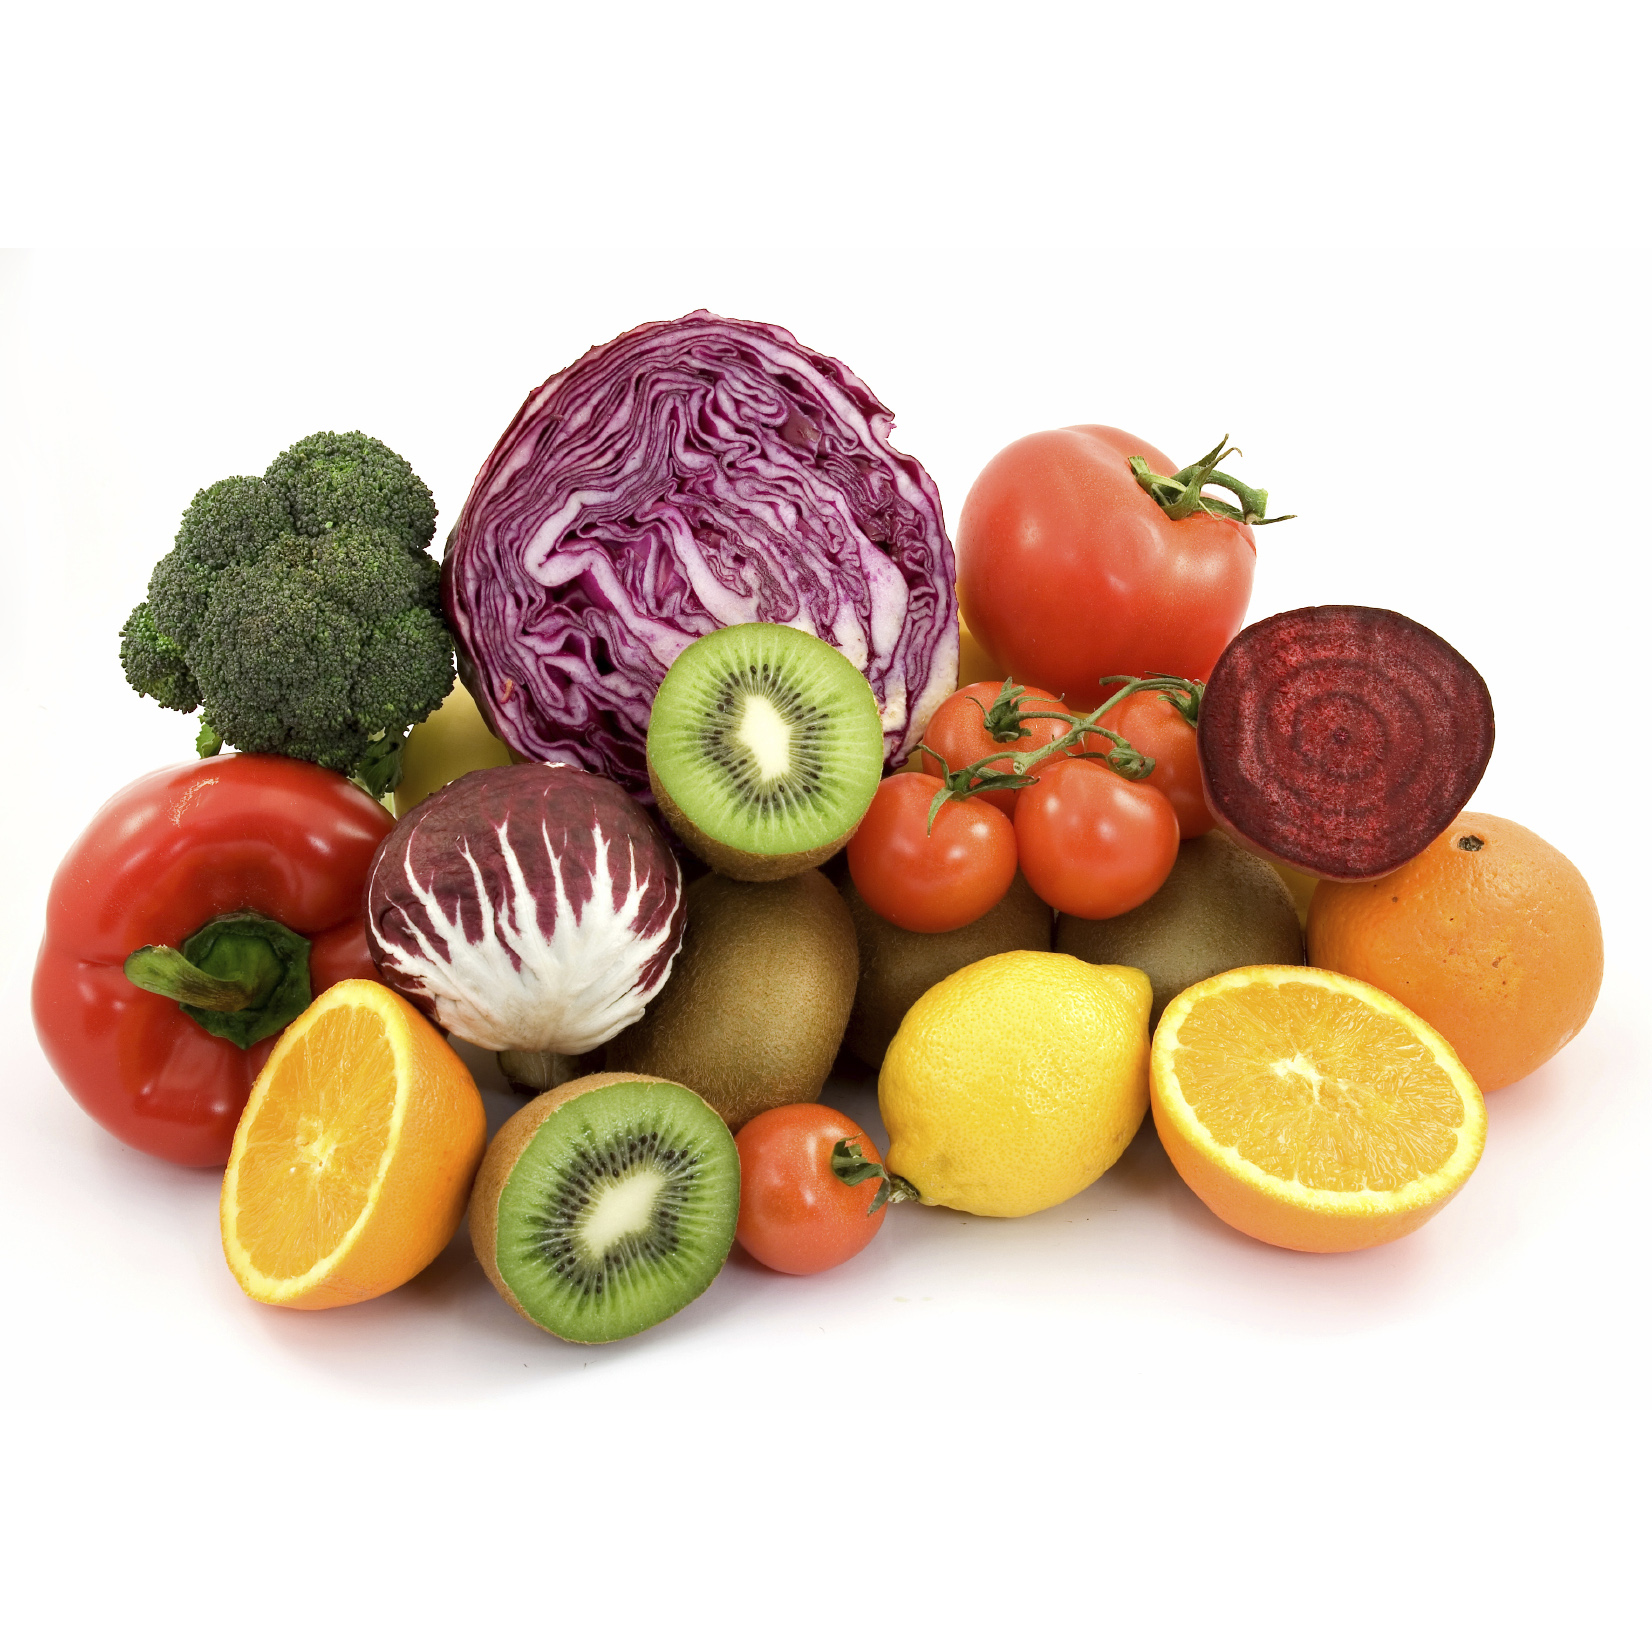 Starting Young With Focus on Fiber May Reduce Breast Cancer Risk Later On